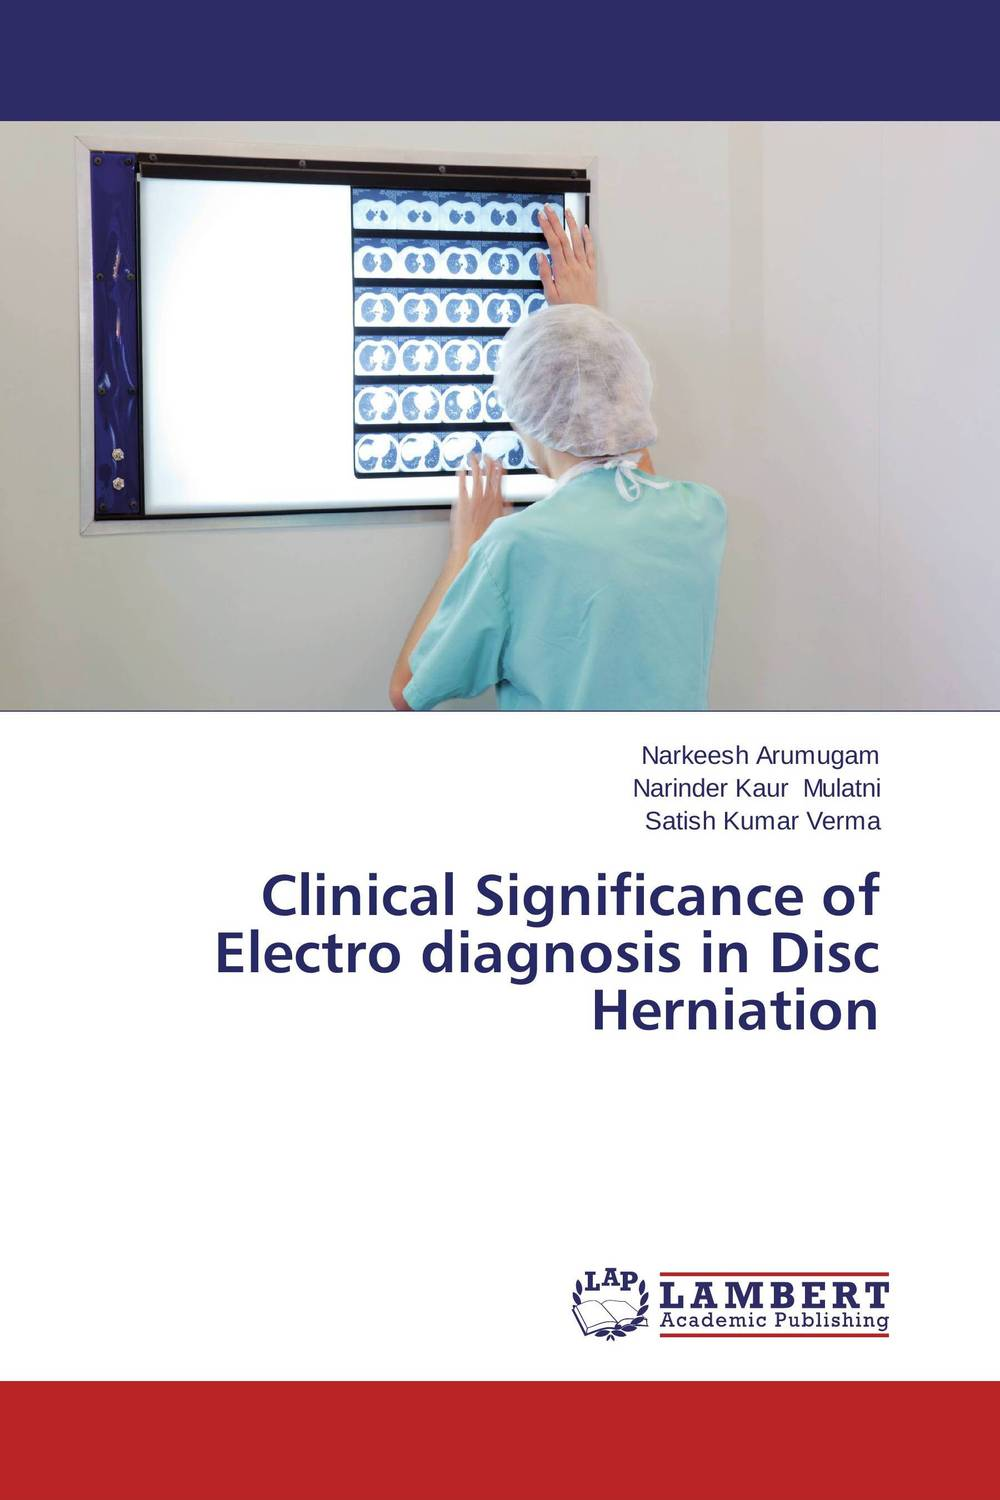 Clinical Significance of Electro diagnosis in Disc Herniation clinical significance of electro diagnosis in disc herniation